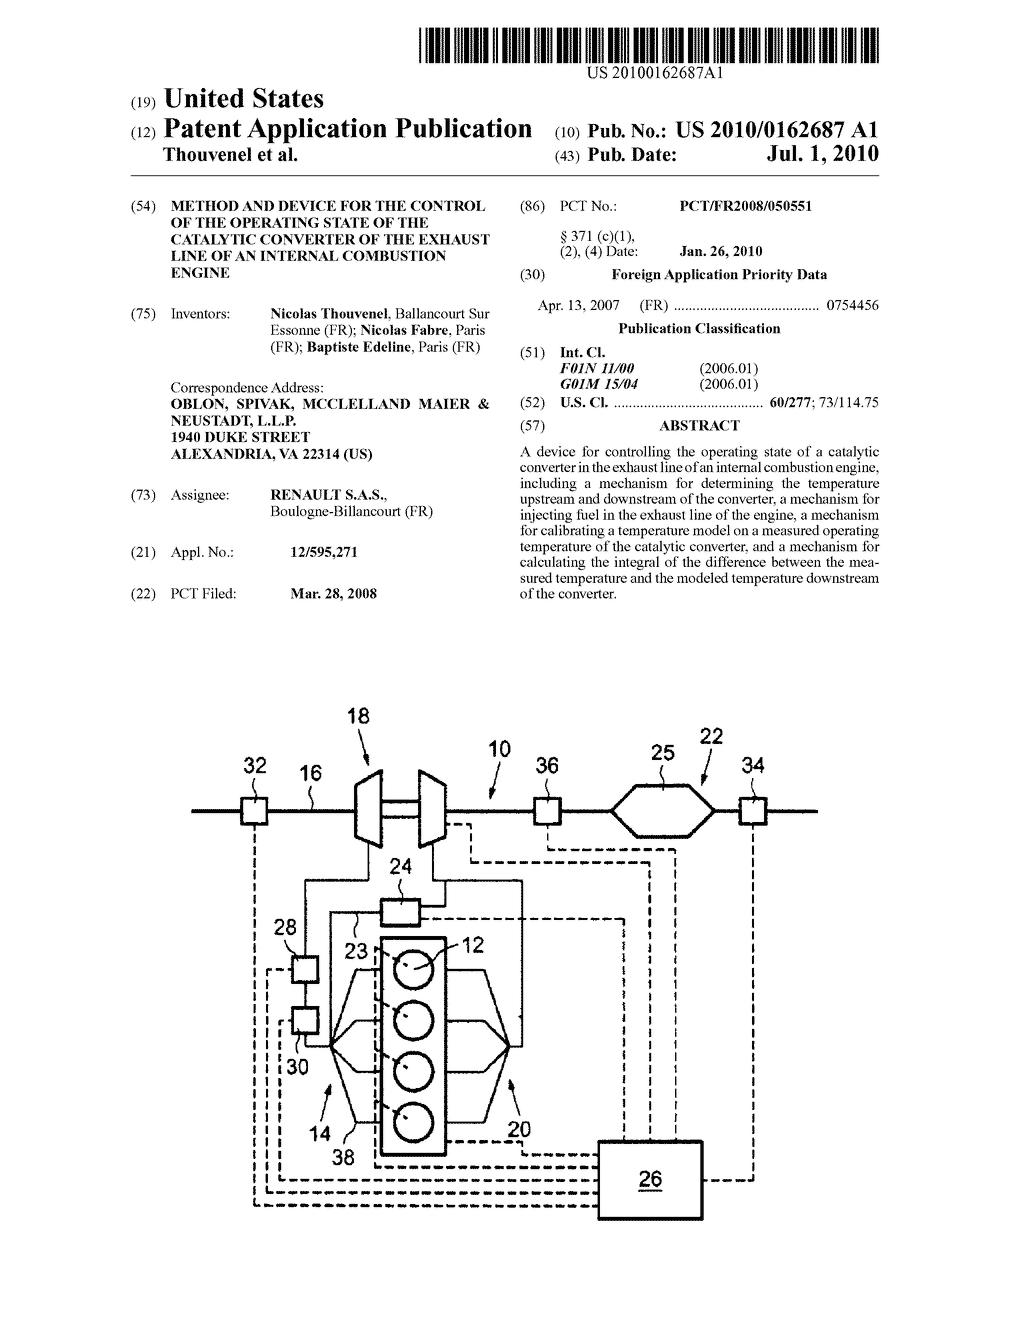 METHOD AND DEVICE FOR THE CONTROL OF THE OPERATING STATE OF THE CATALYTIC CONVERTER OF THE EXHAUST LINE OF AN INTERNAL COMBUSTION ENGINE - diagram, schematic, and image 01